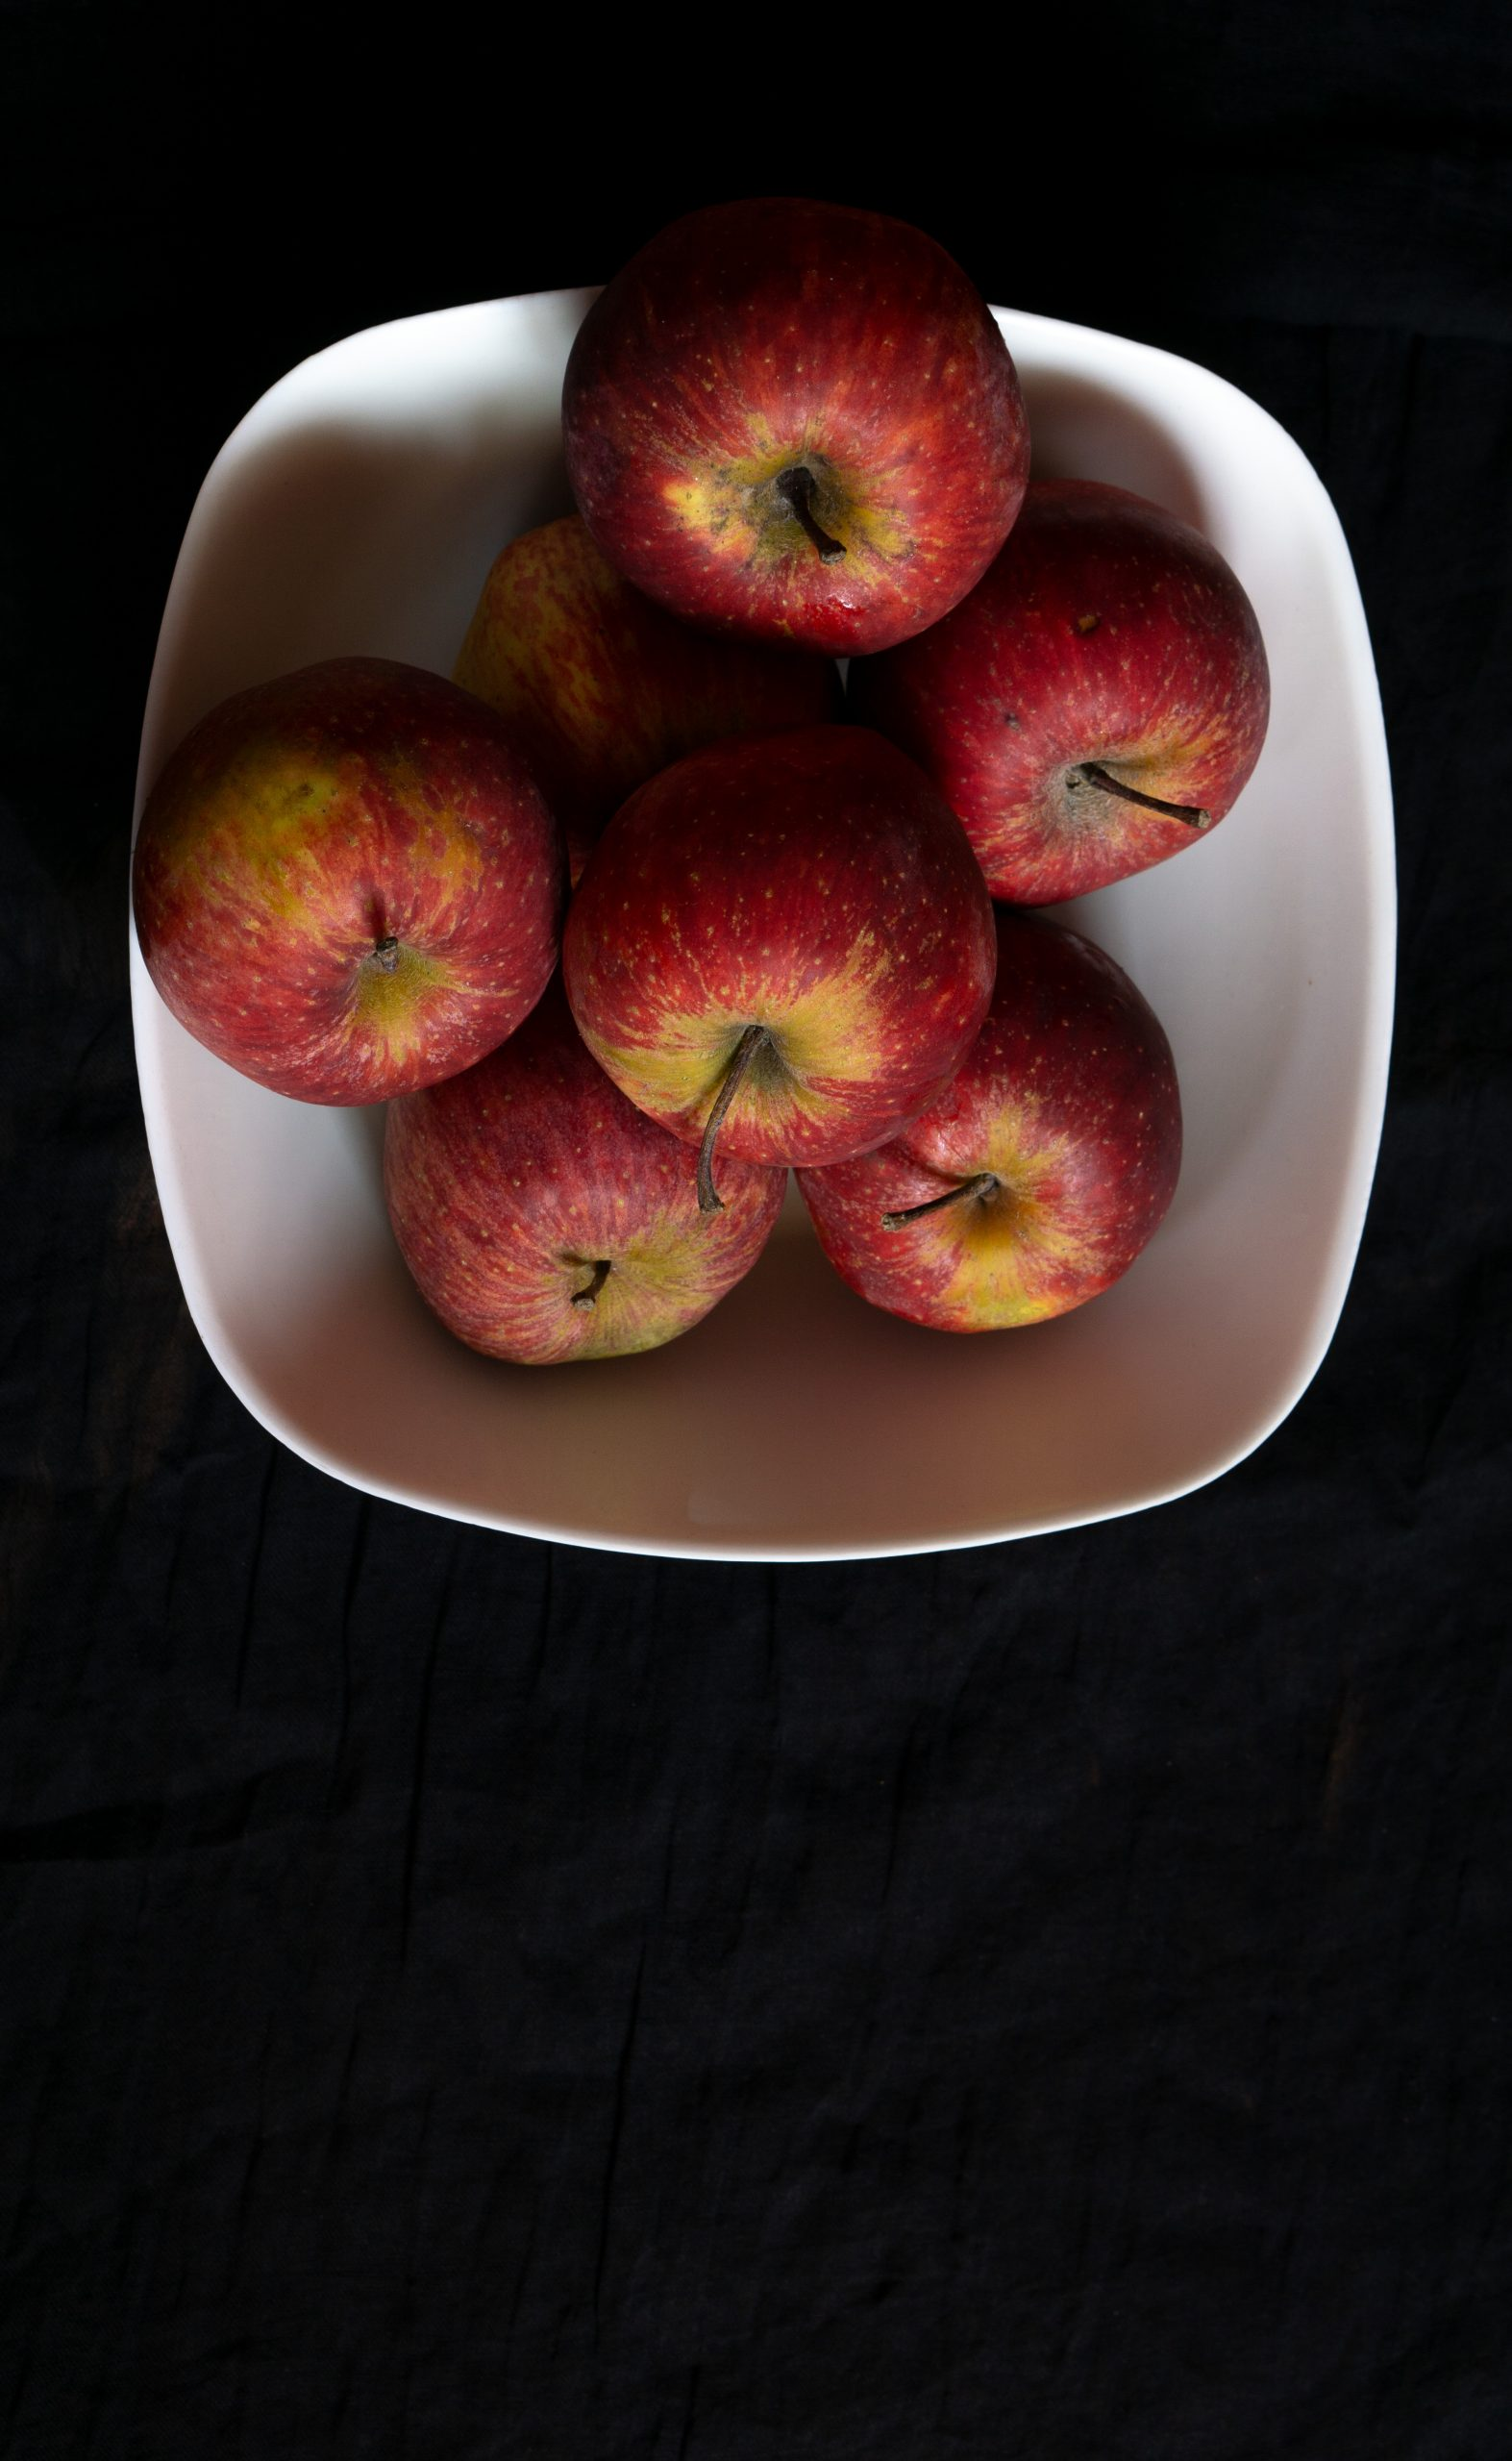 apples in a plate